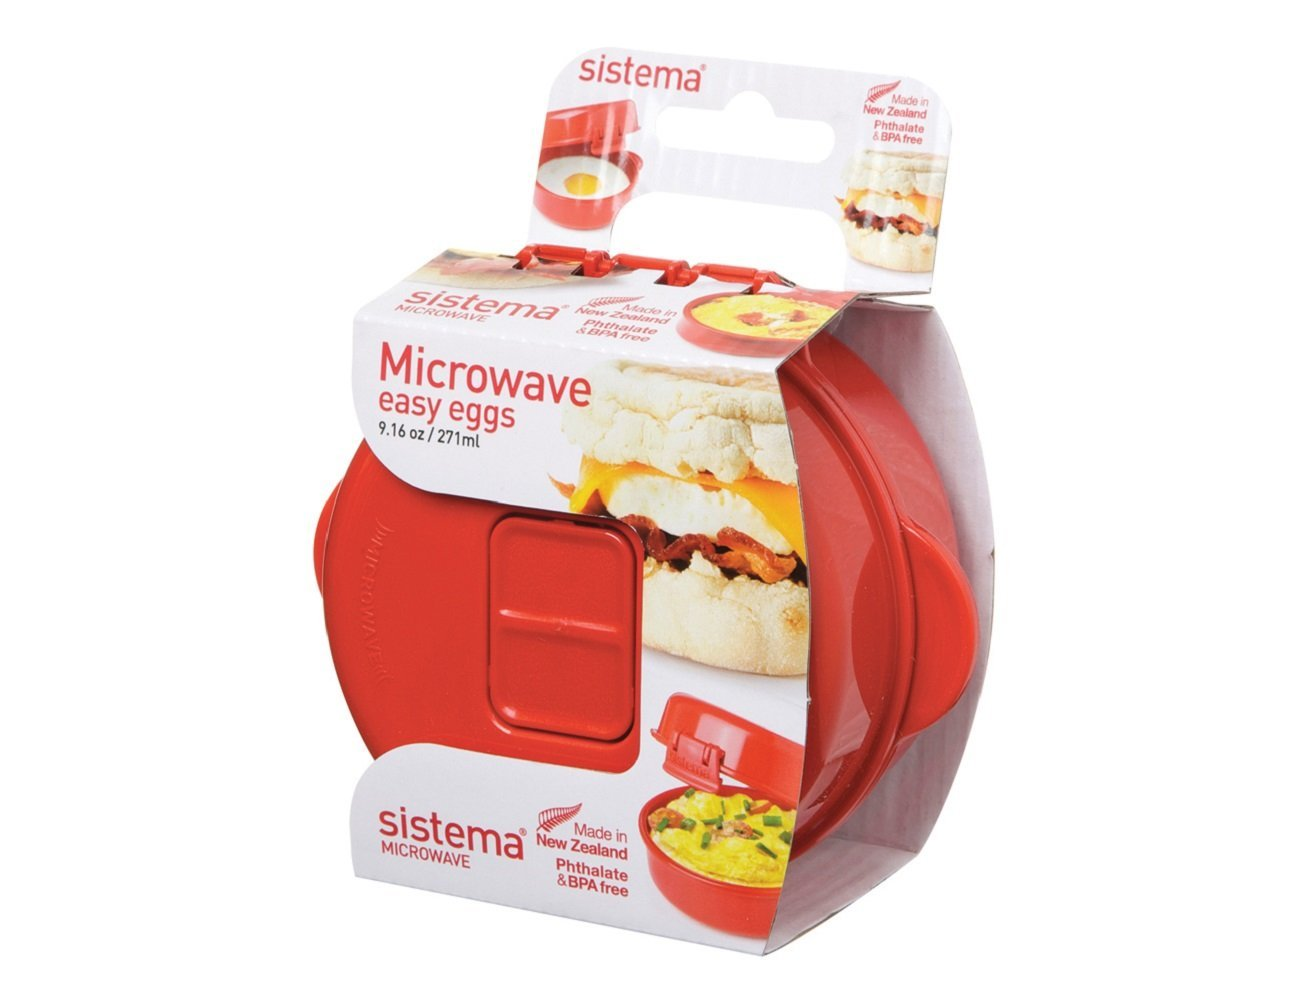 sistema microwave egg cooker easy eggs 270 ml red amazon co uk